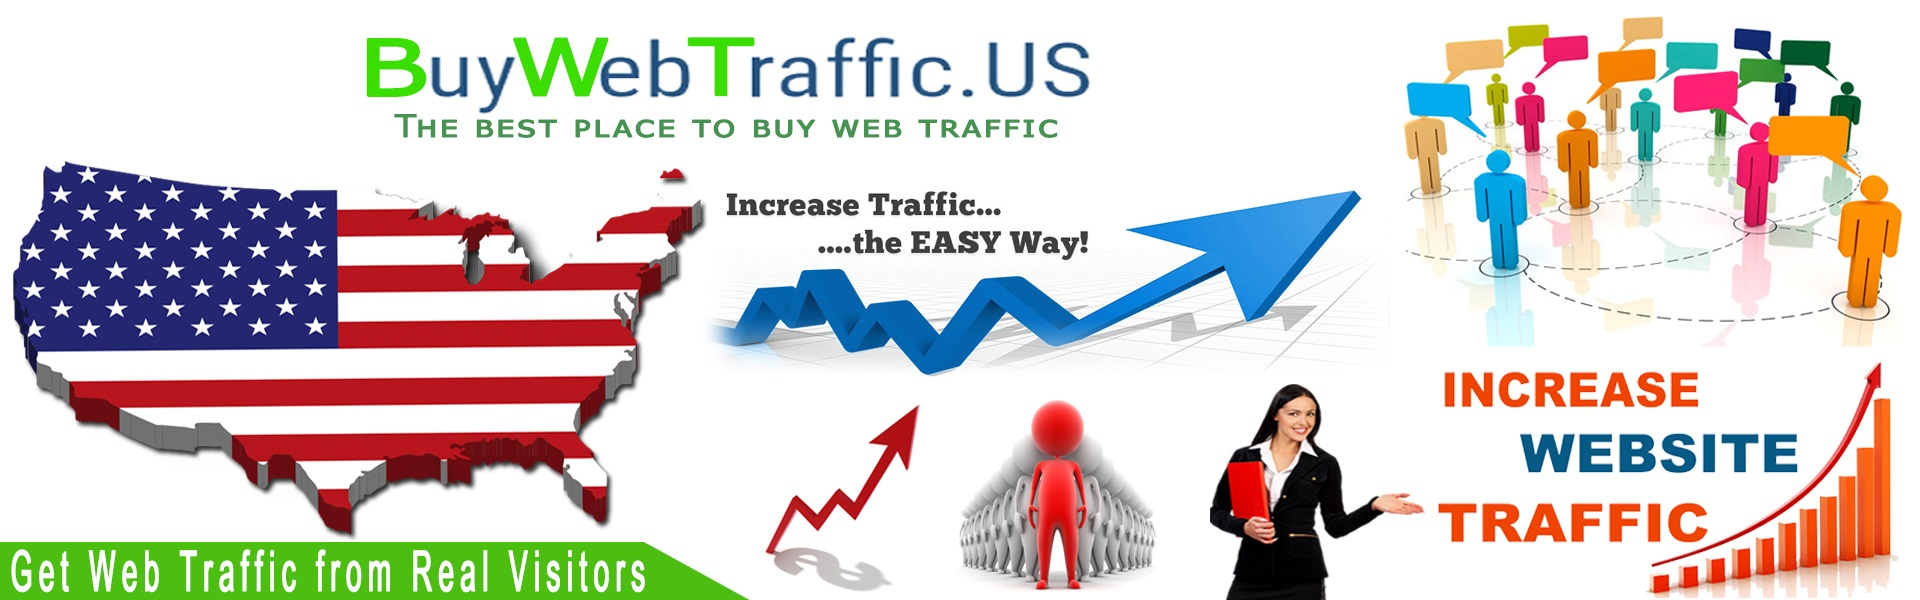 BuyWebTraffic.US main page